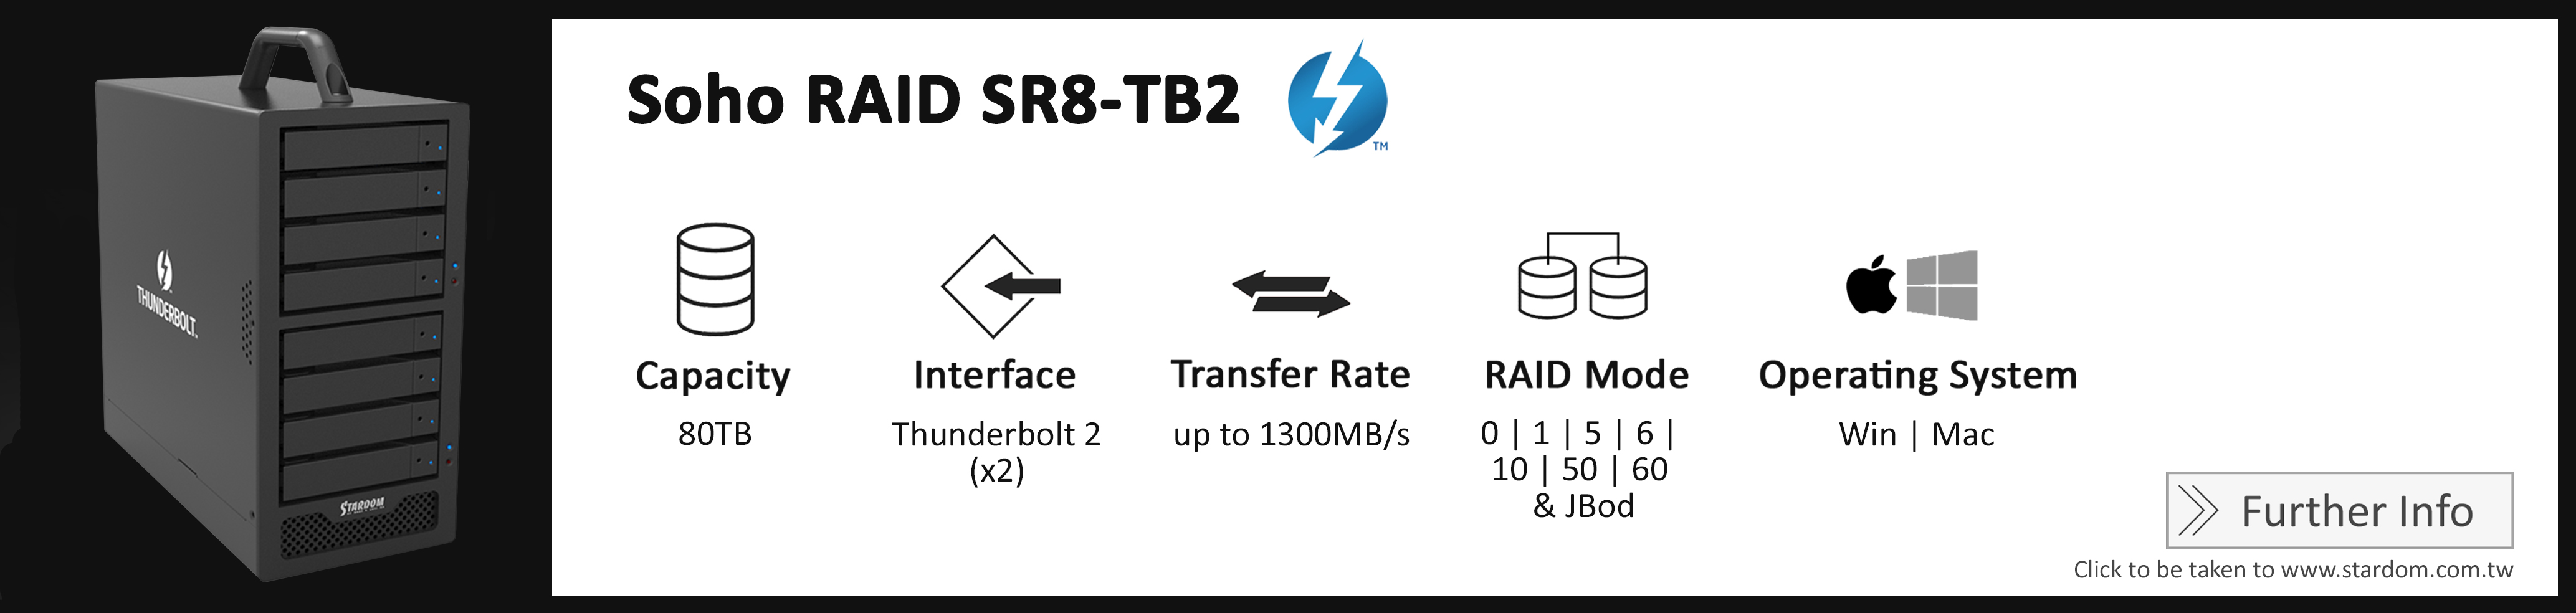 Stardom_SR8-TB2_Cost Effective RAID Storage